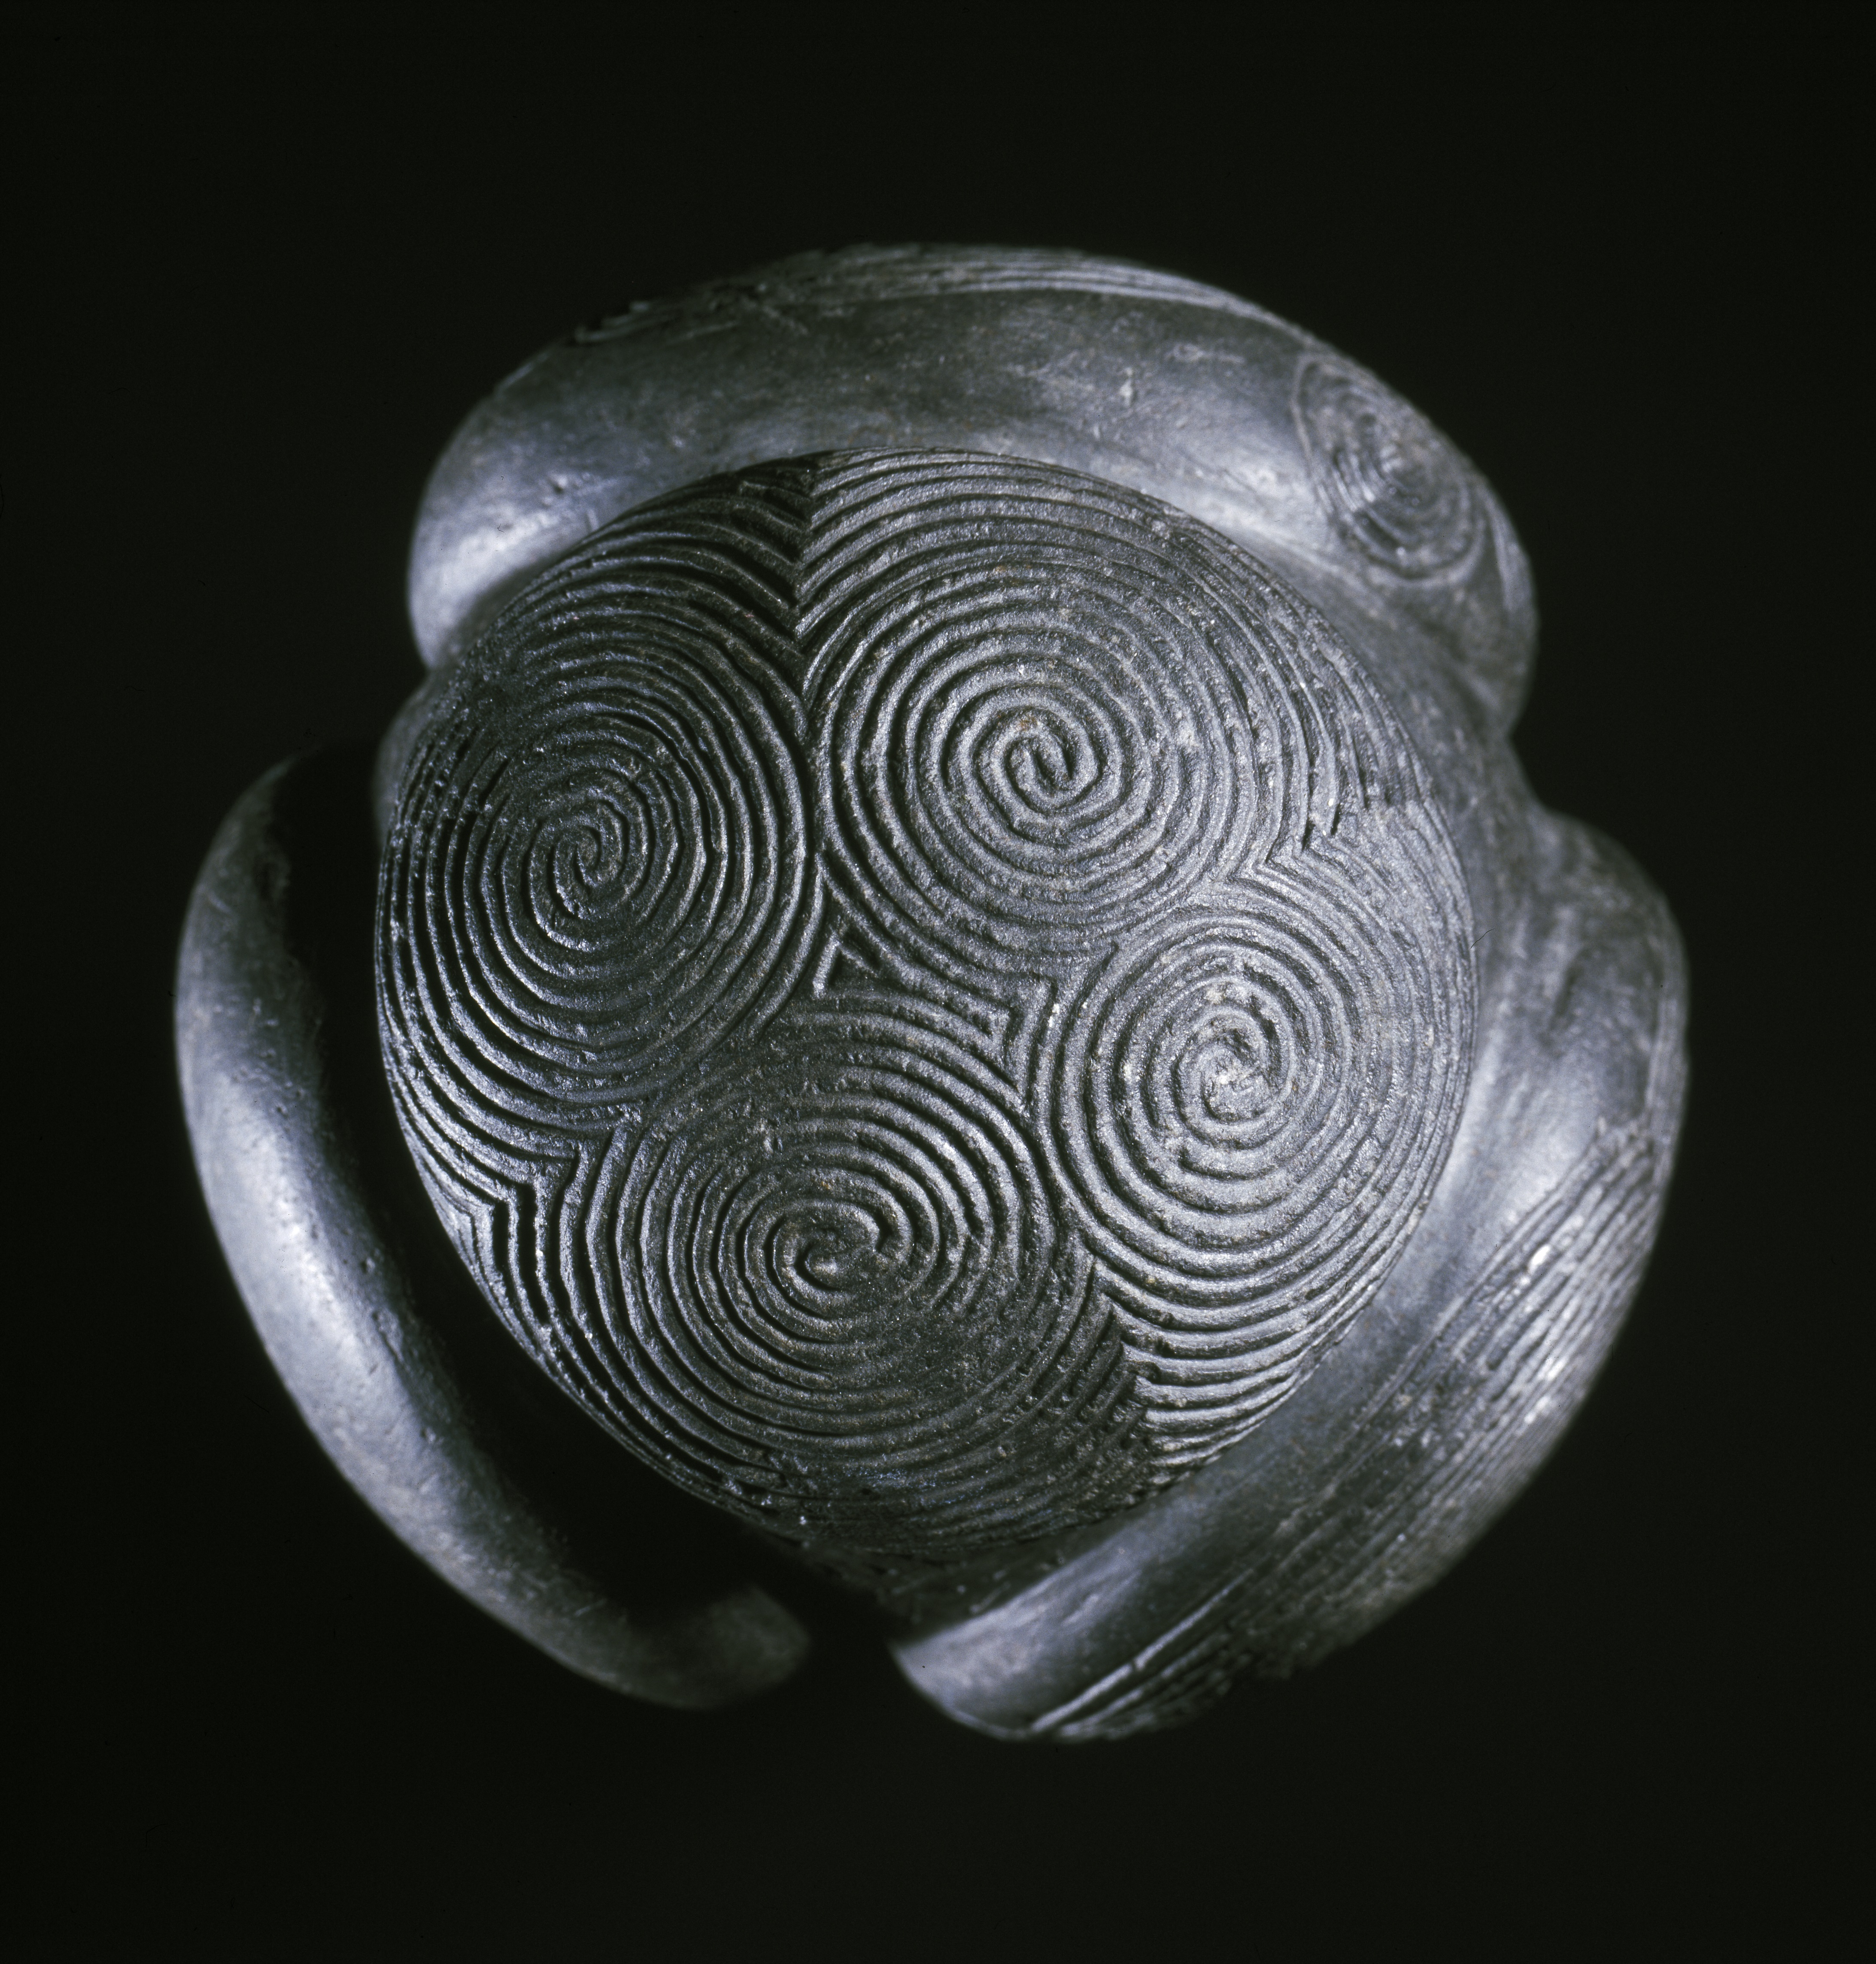 spiral-decorated-face-of-the-towie-carved-stone-ball-c-national-museums-scotland